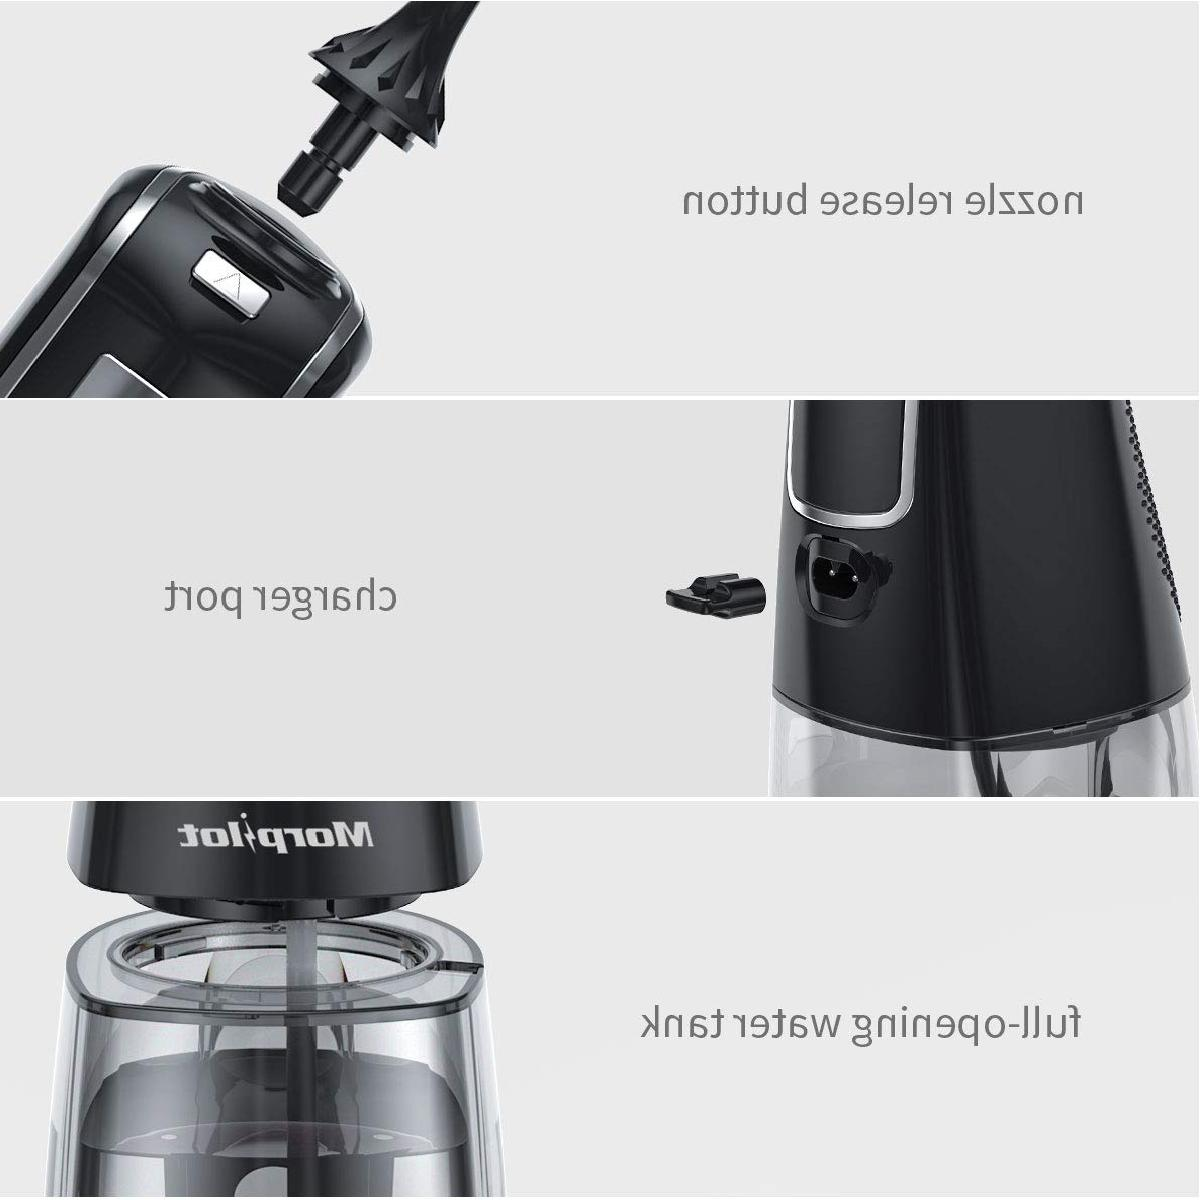 Water Flosser Cordless 5 Tips, Modes, 300ML,